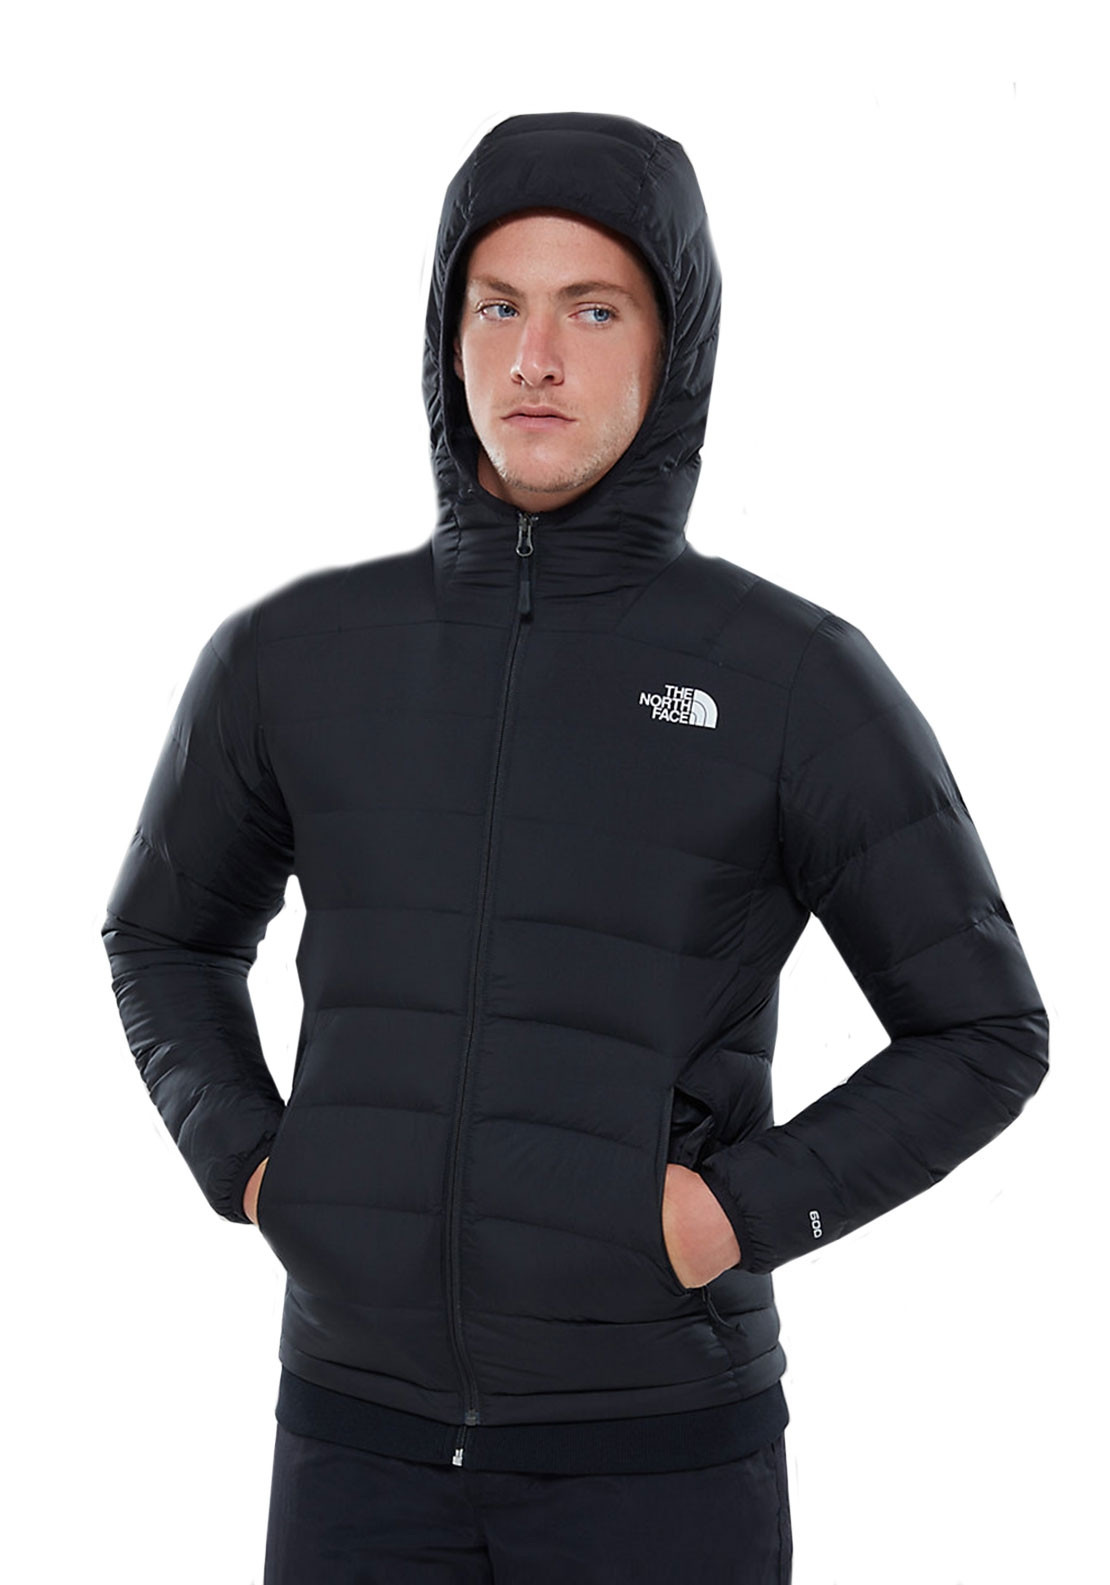 b7c2d255c456 The North Face Men s Paz Hooded Jacket